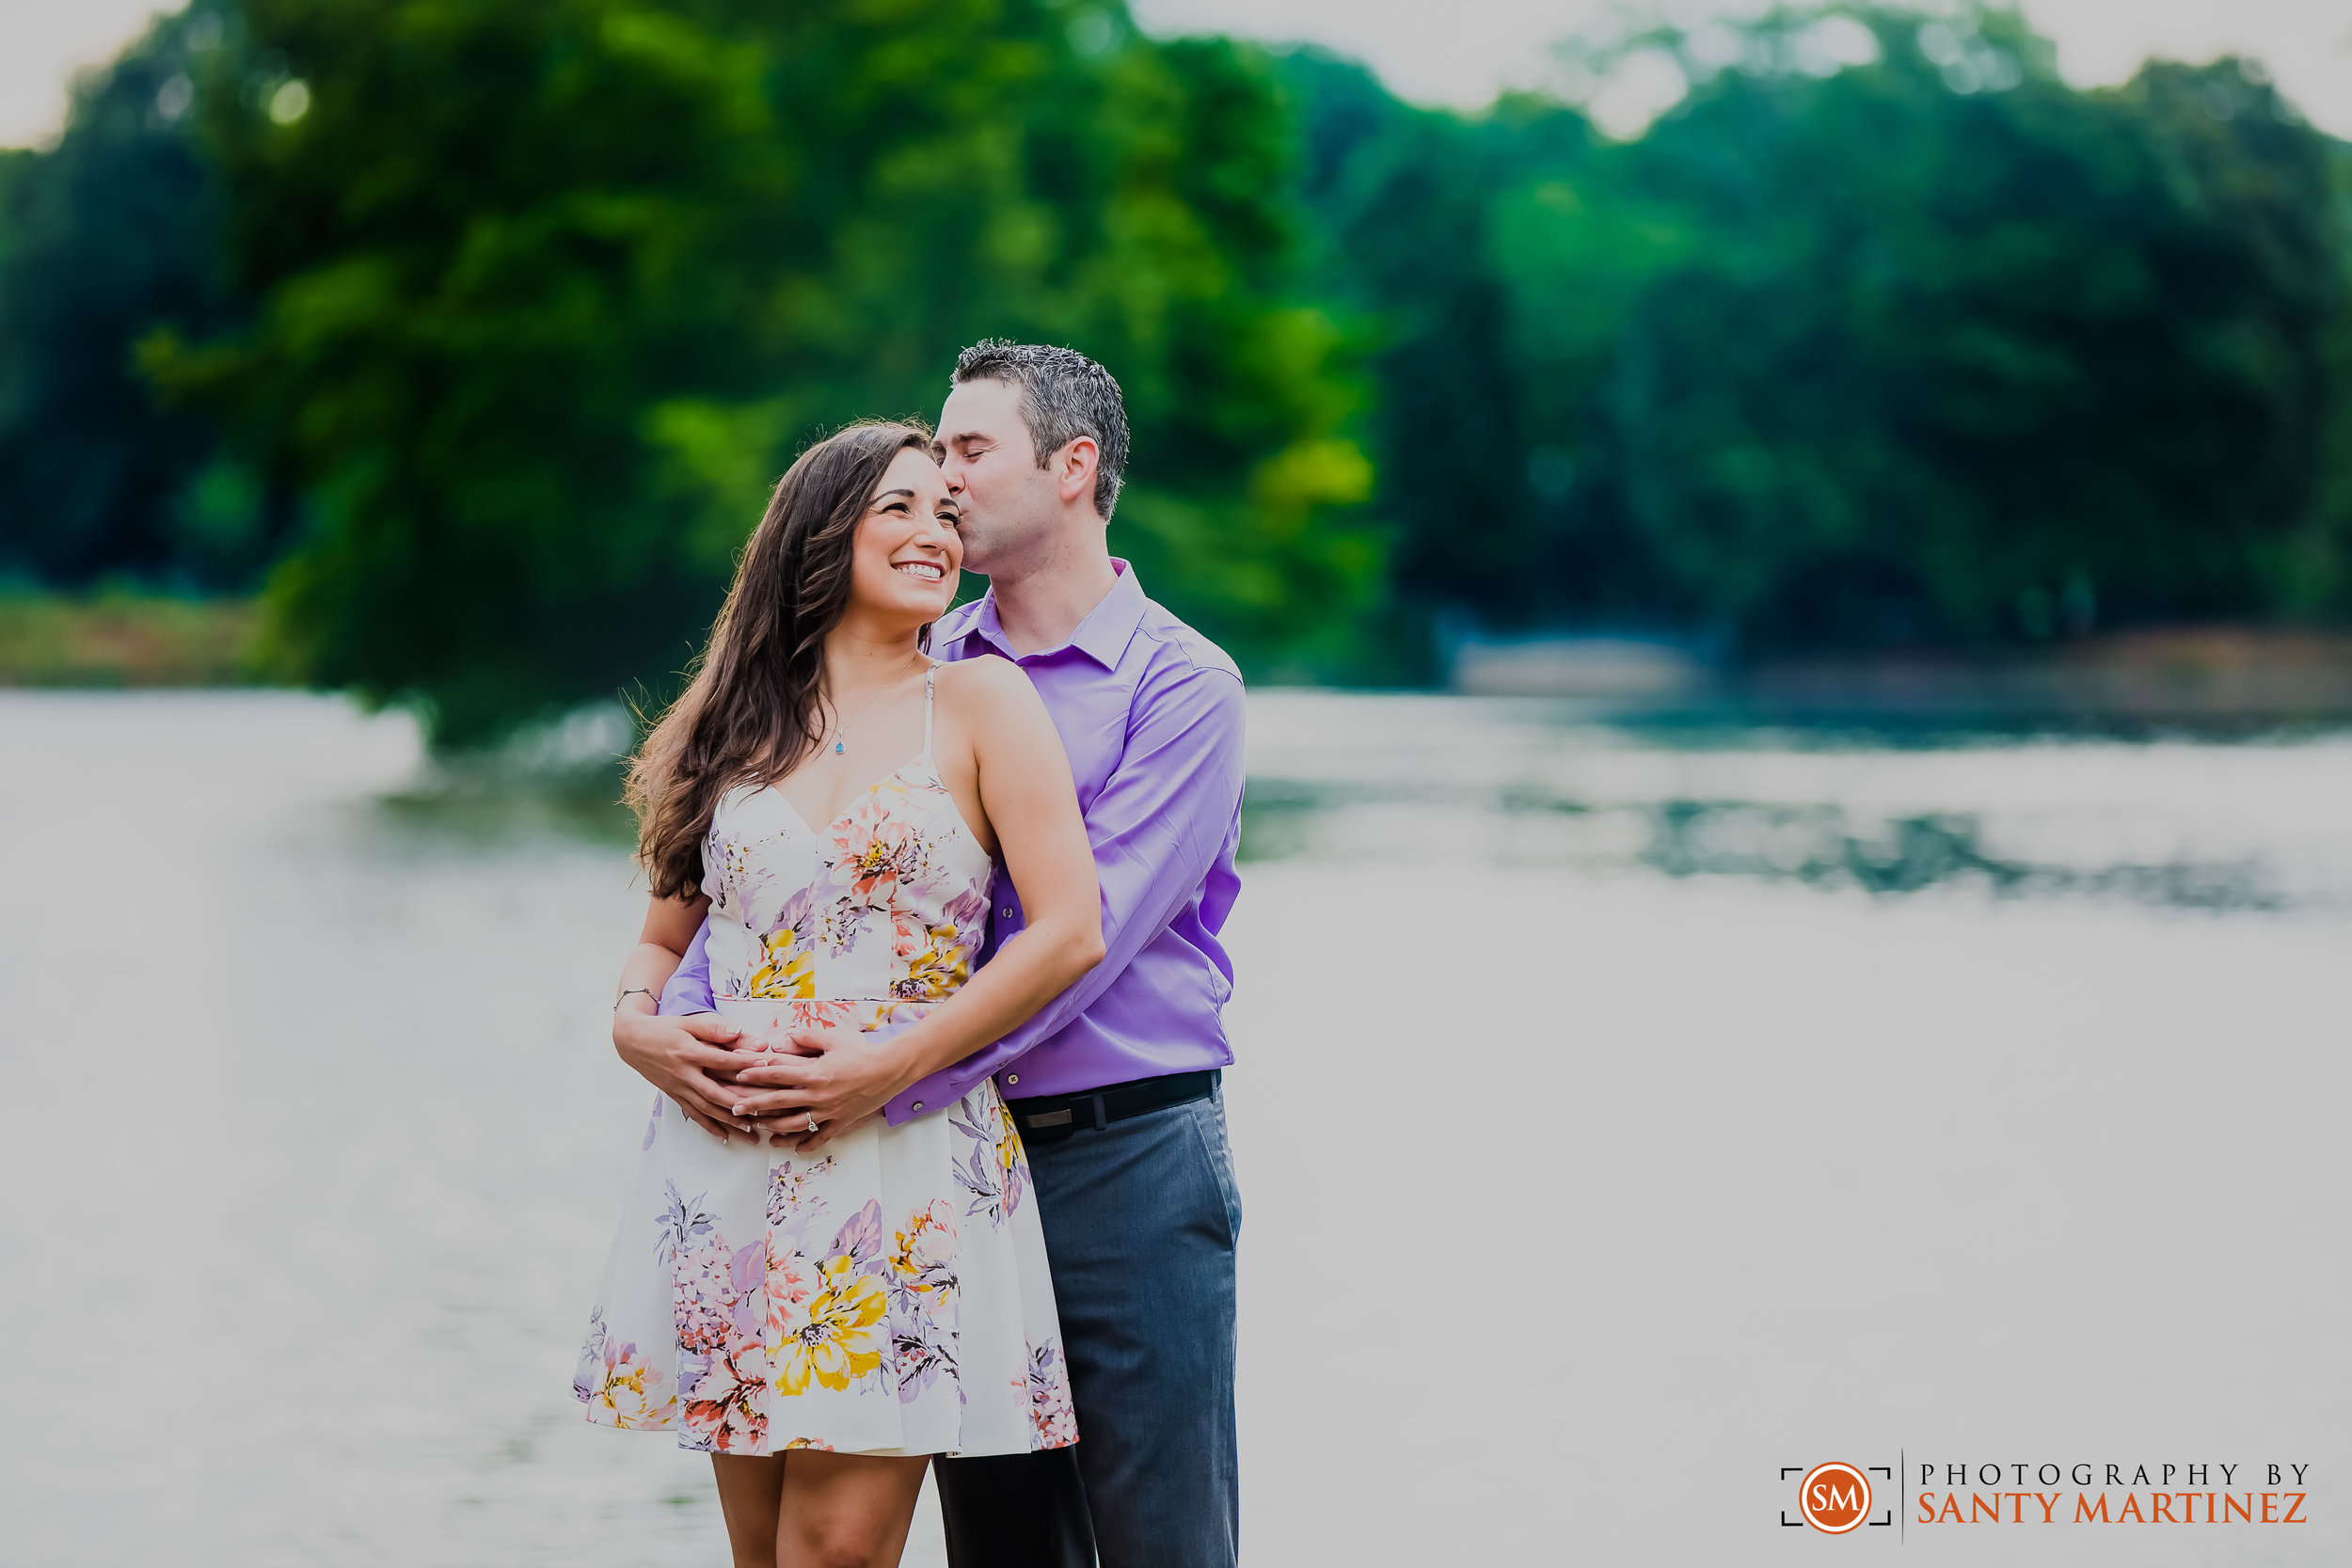 Engagement Session Piedmont Park - Santy Martinez Photography-2.jpg